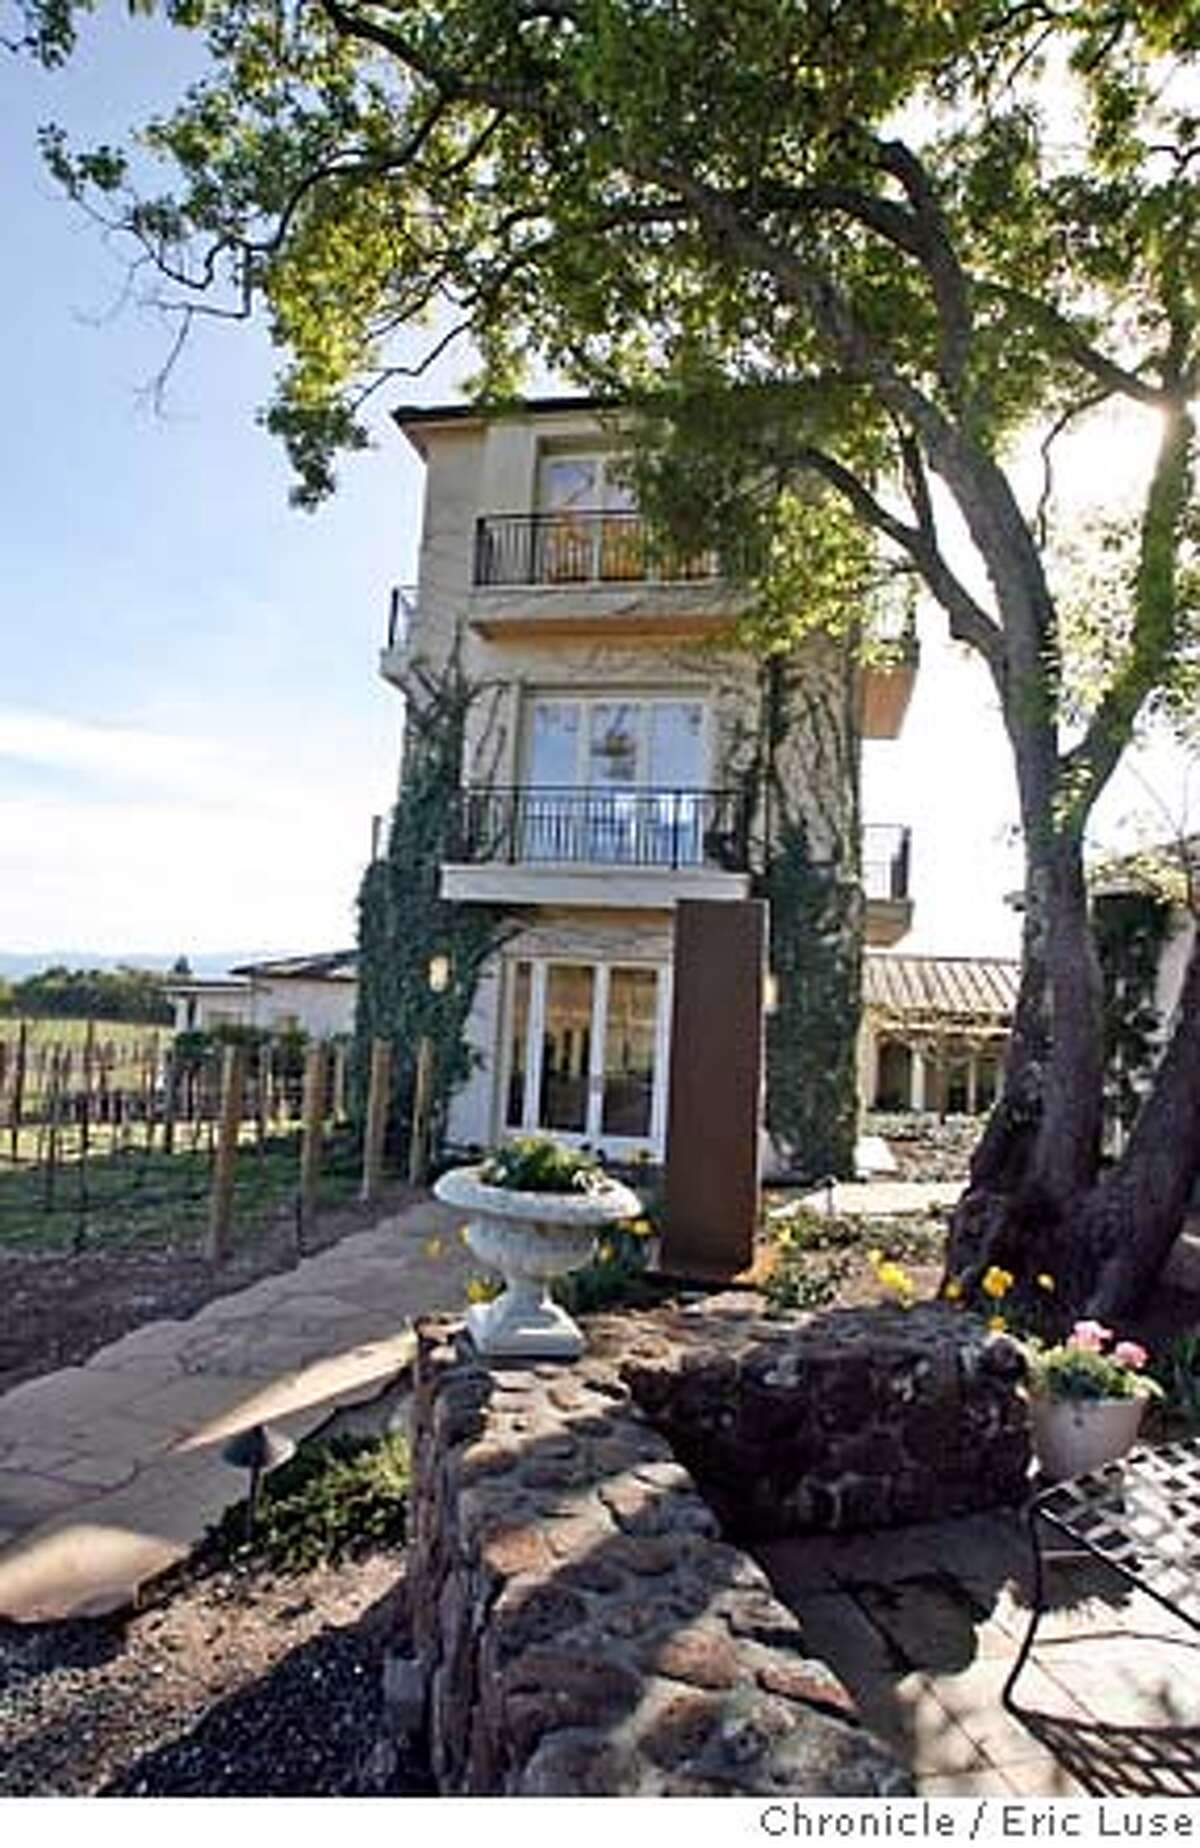 .JPG Craig's office tower has a sweeping view of the vineyards Craig and Kathryn Hall's home in Napa. Photographer: Eric Luse / The Chronicle names cq from source MANDATORY CREDIT FOR PHOTOG AND SF CHRONICLE/NO SALES-MAGS OUT